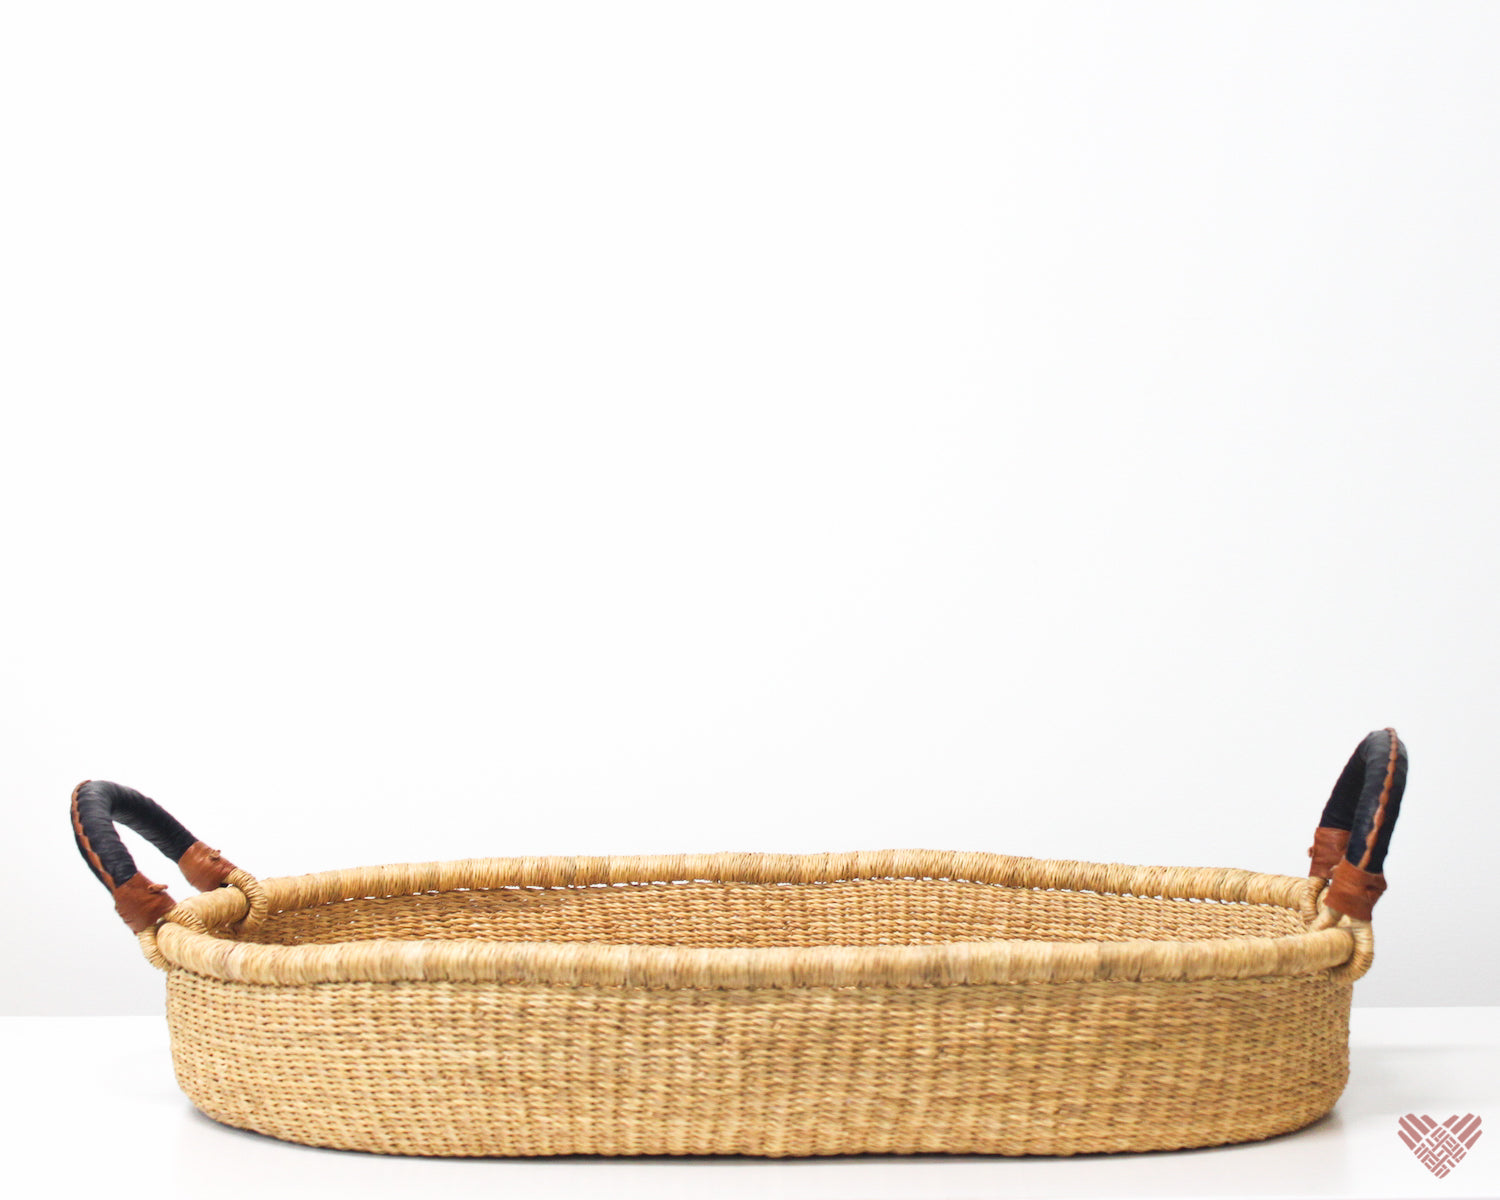 Changing Basket